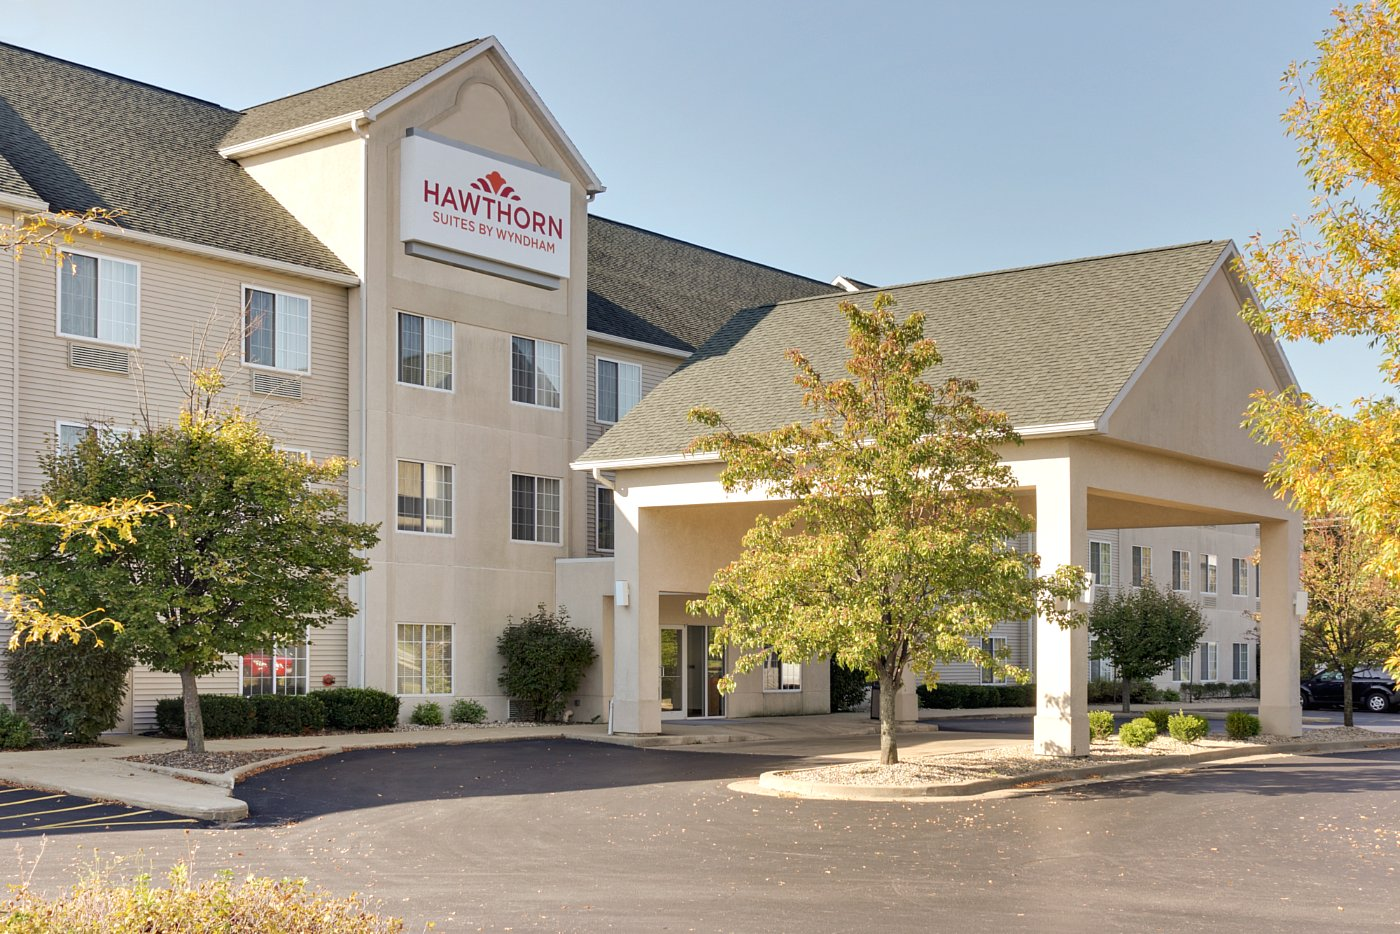 Ipd Hospitality To Manage The Hawthorn Suites By Wyndham In Decatur Ill Hotel Management